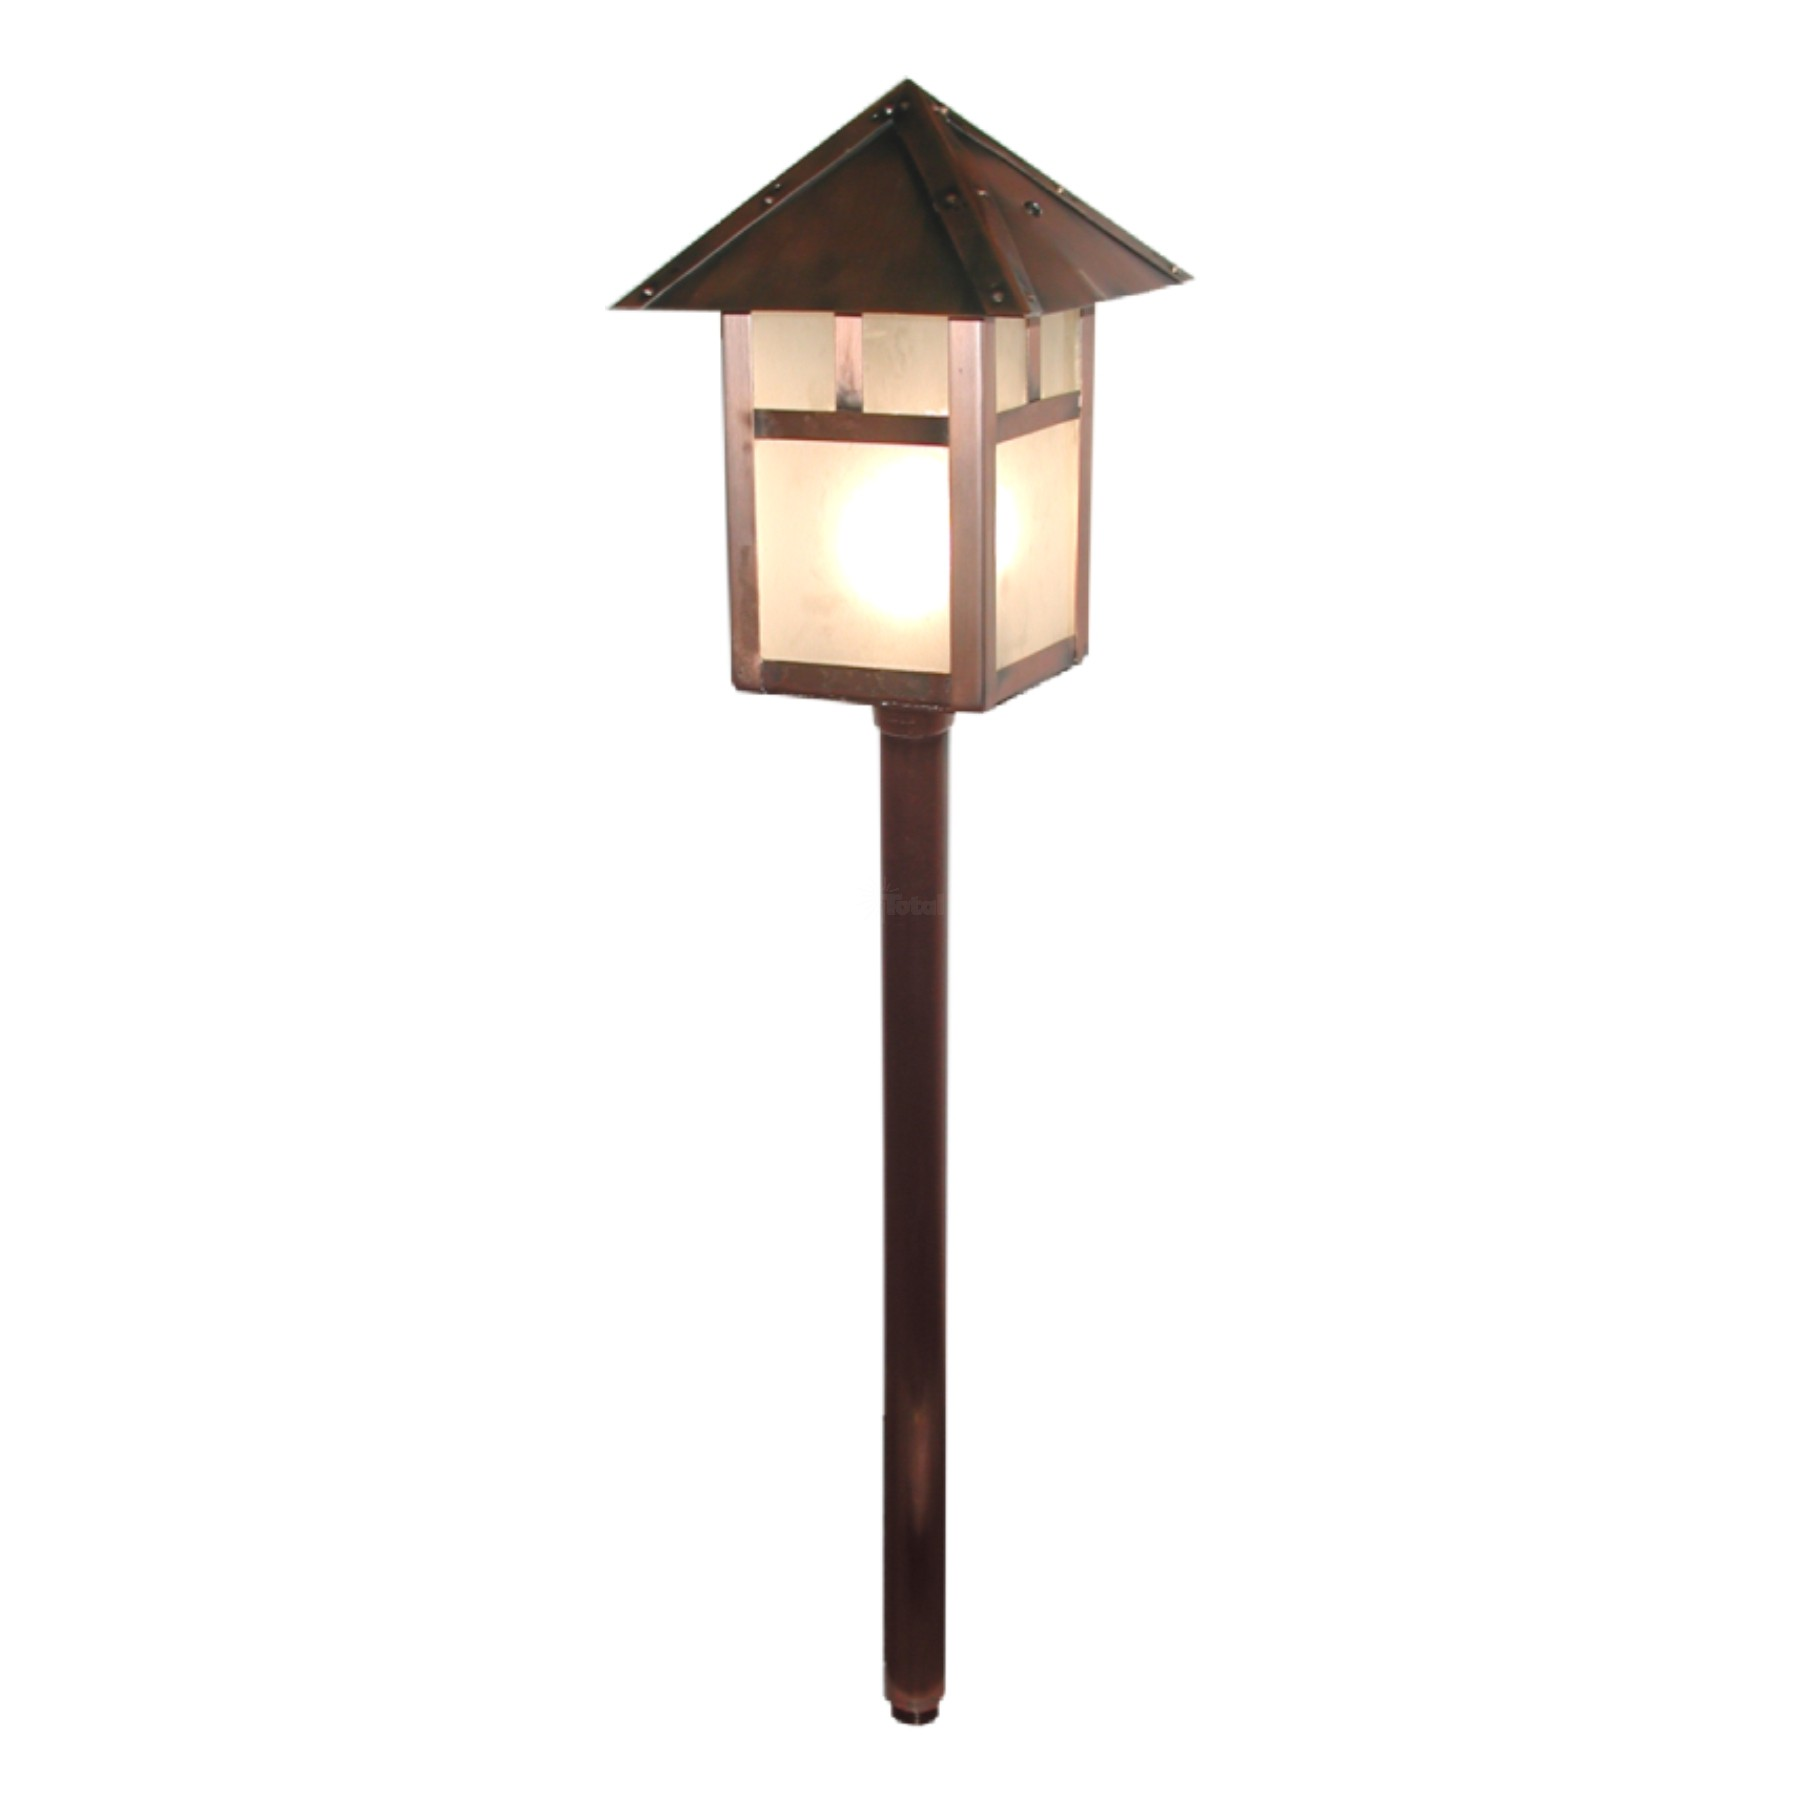 Landscape lighting low voltage lantern path light for Landscape lighting products